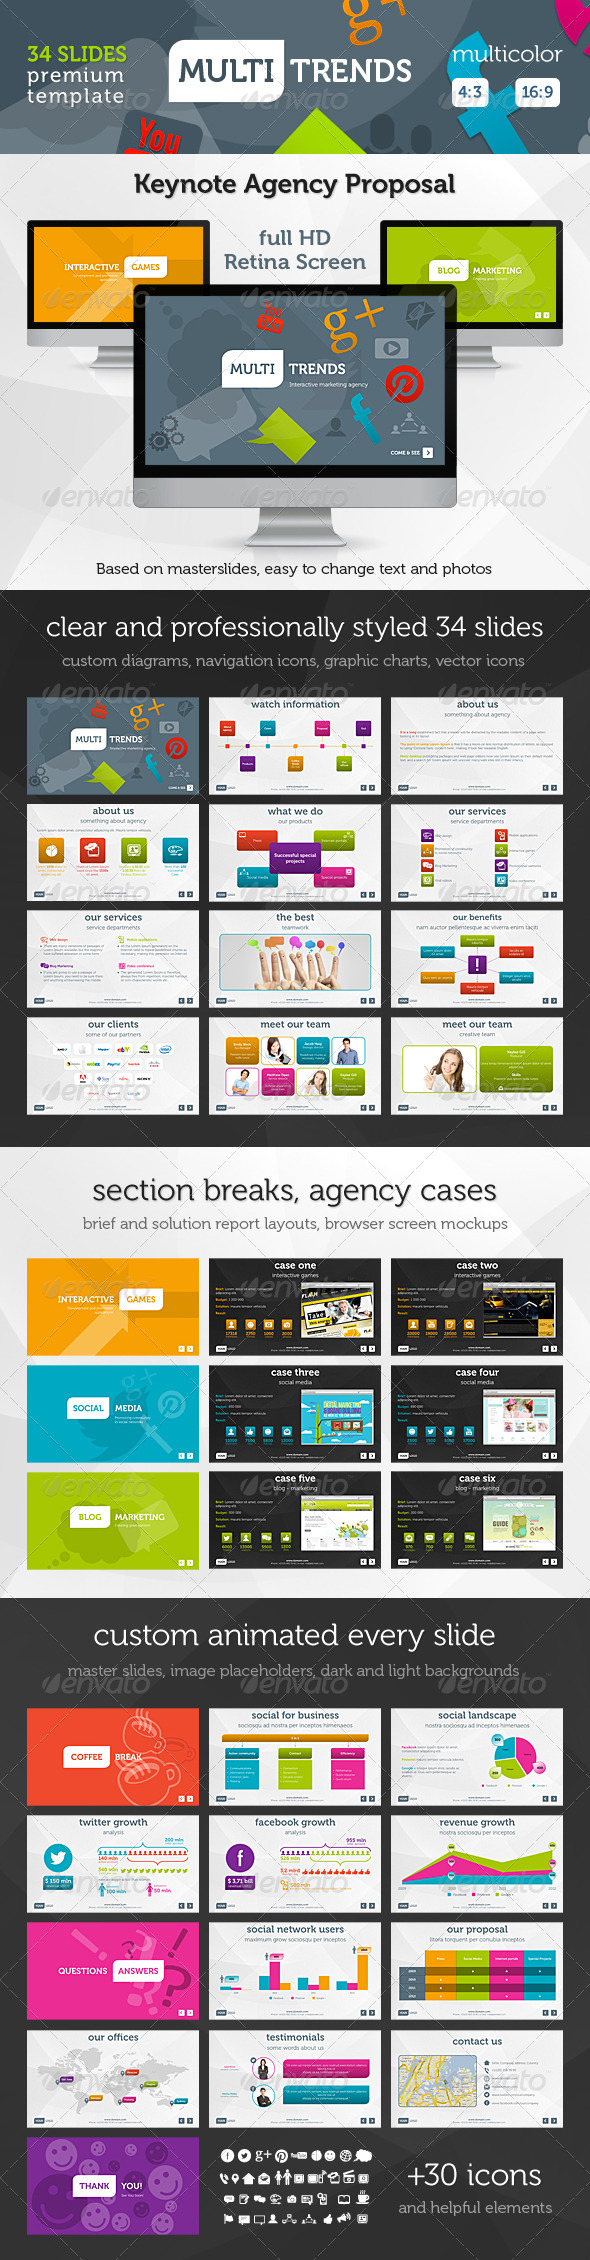 Multi Trends Keynote Presentation Template - Keynote Templates Presentation Templates